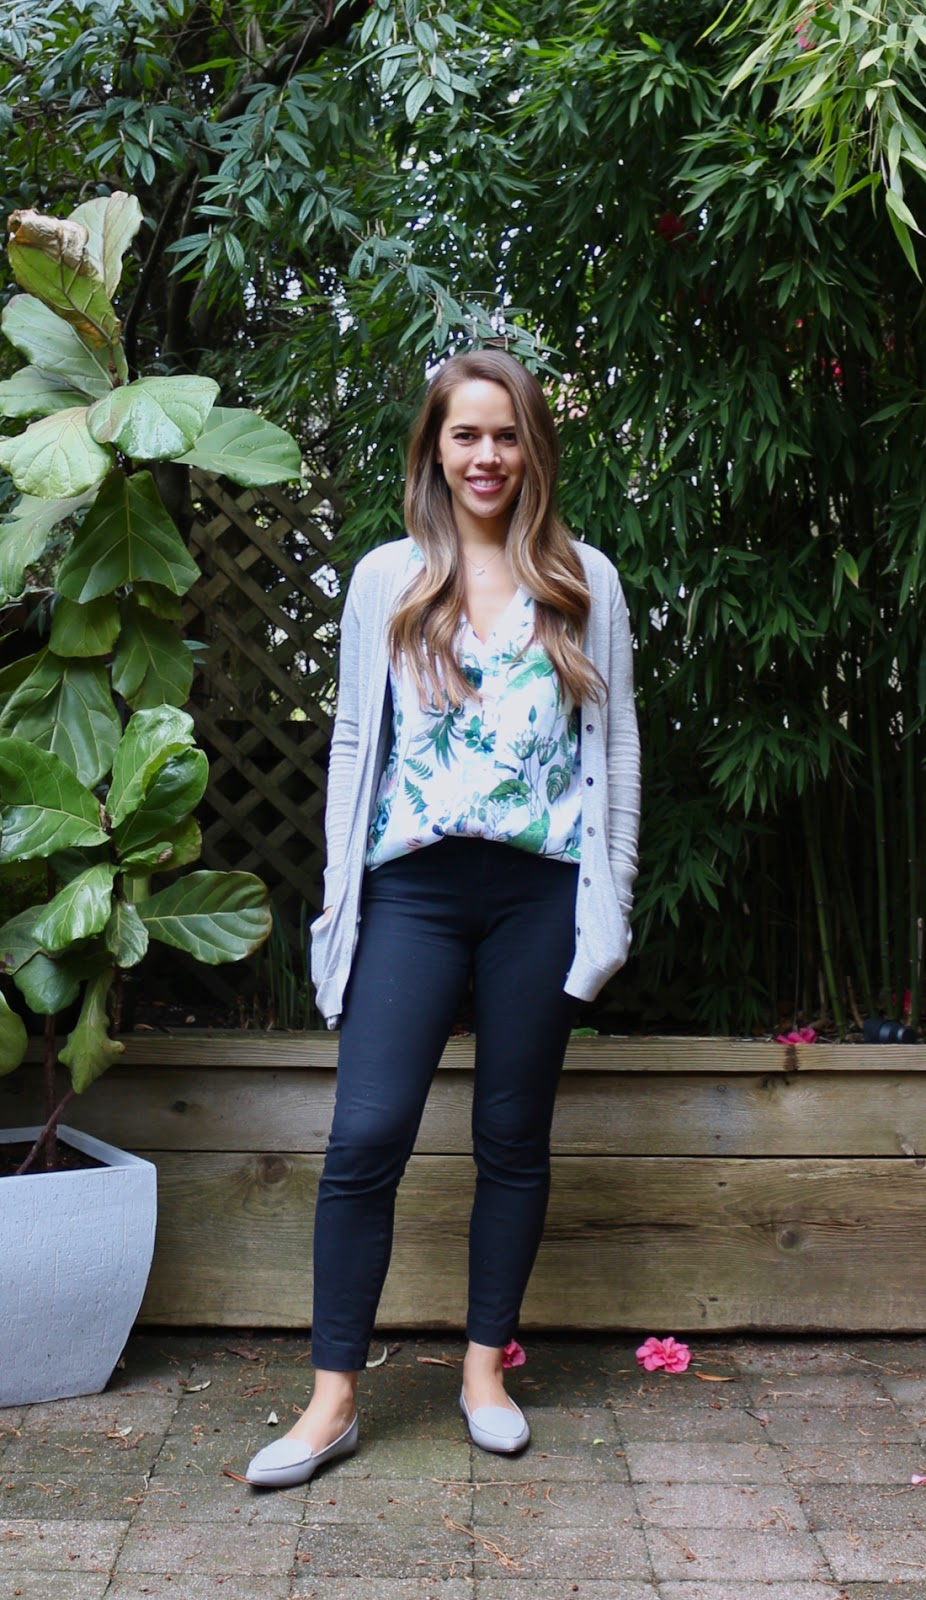 Jules in Flats - Botanical Print Sleeveless Top (Business Casual Spring Workwear on a Budget)